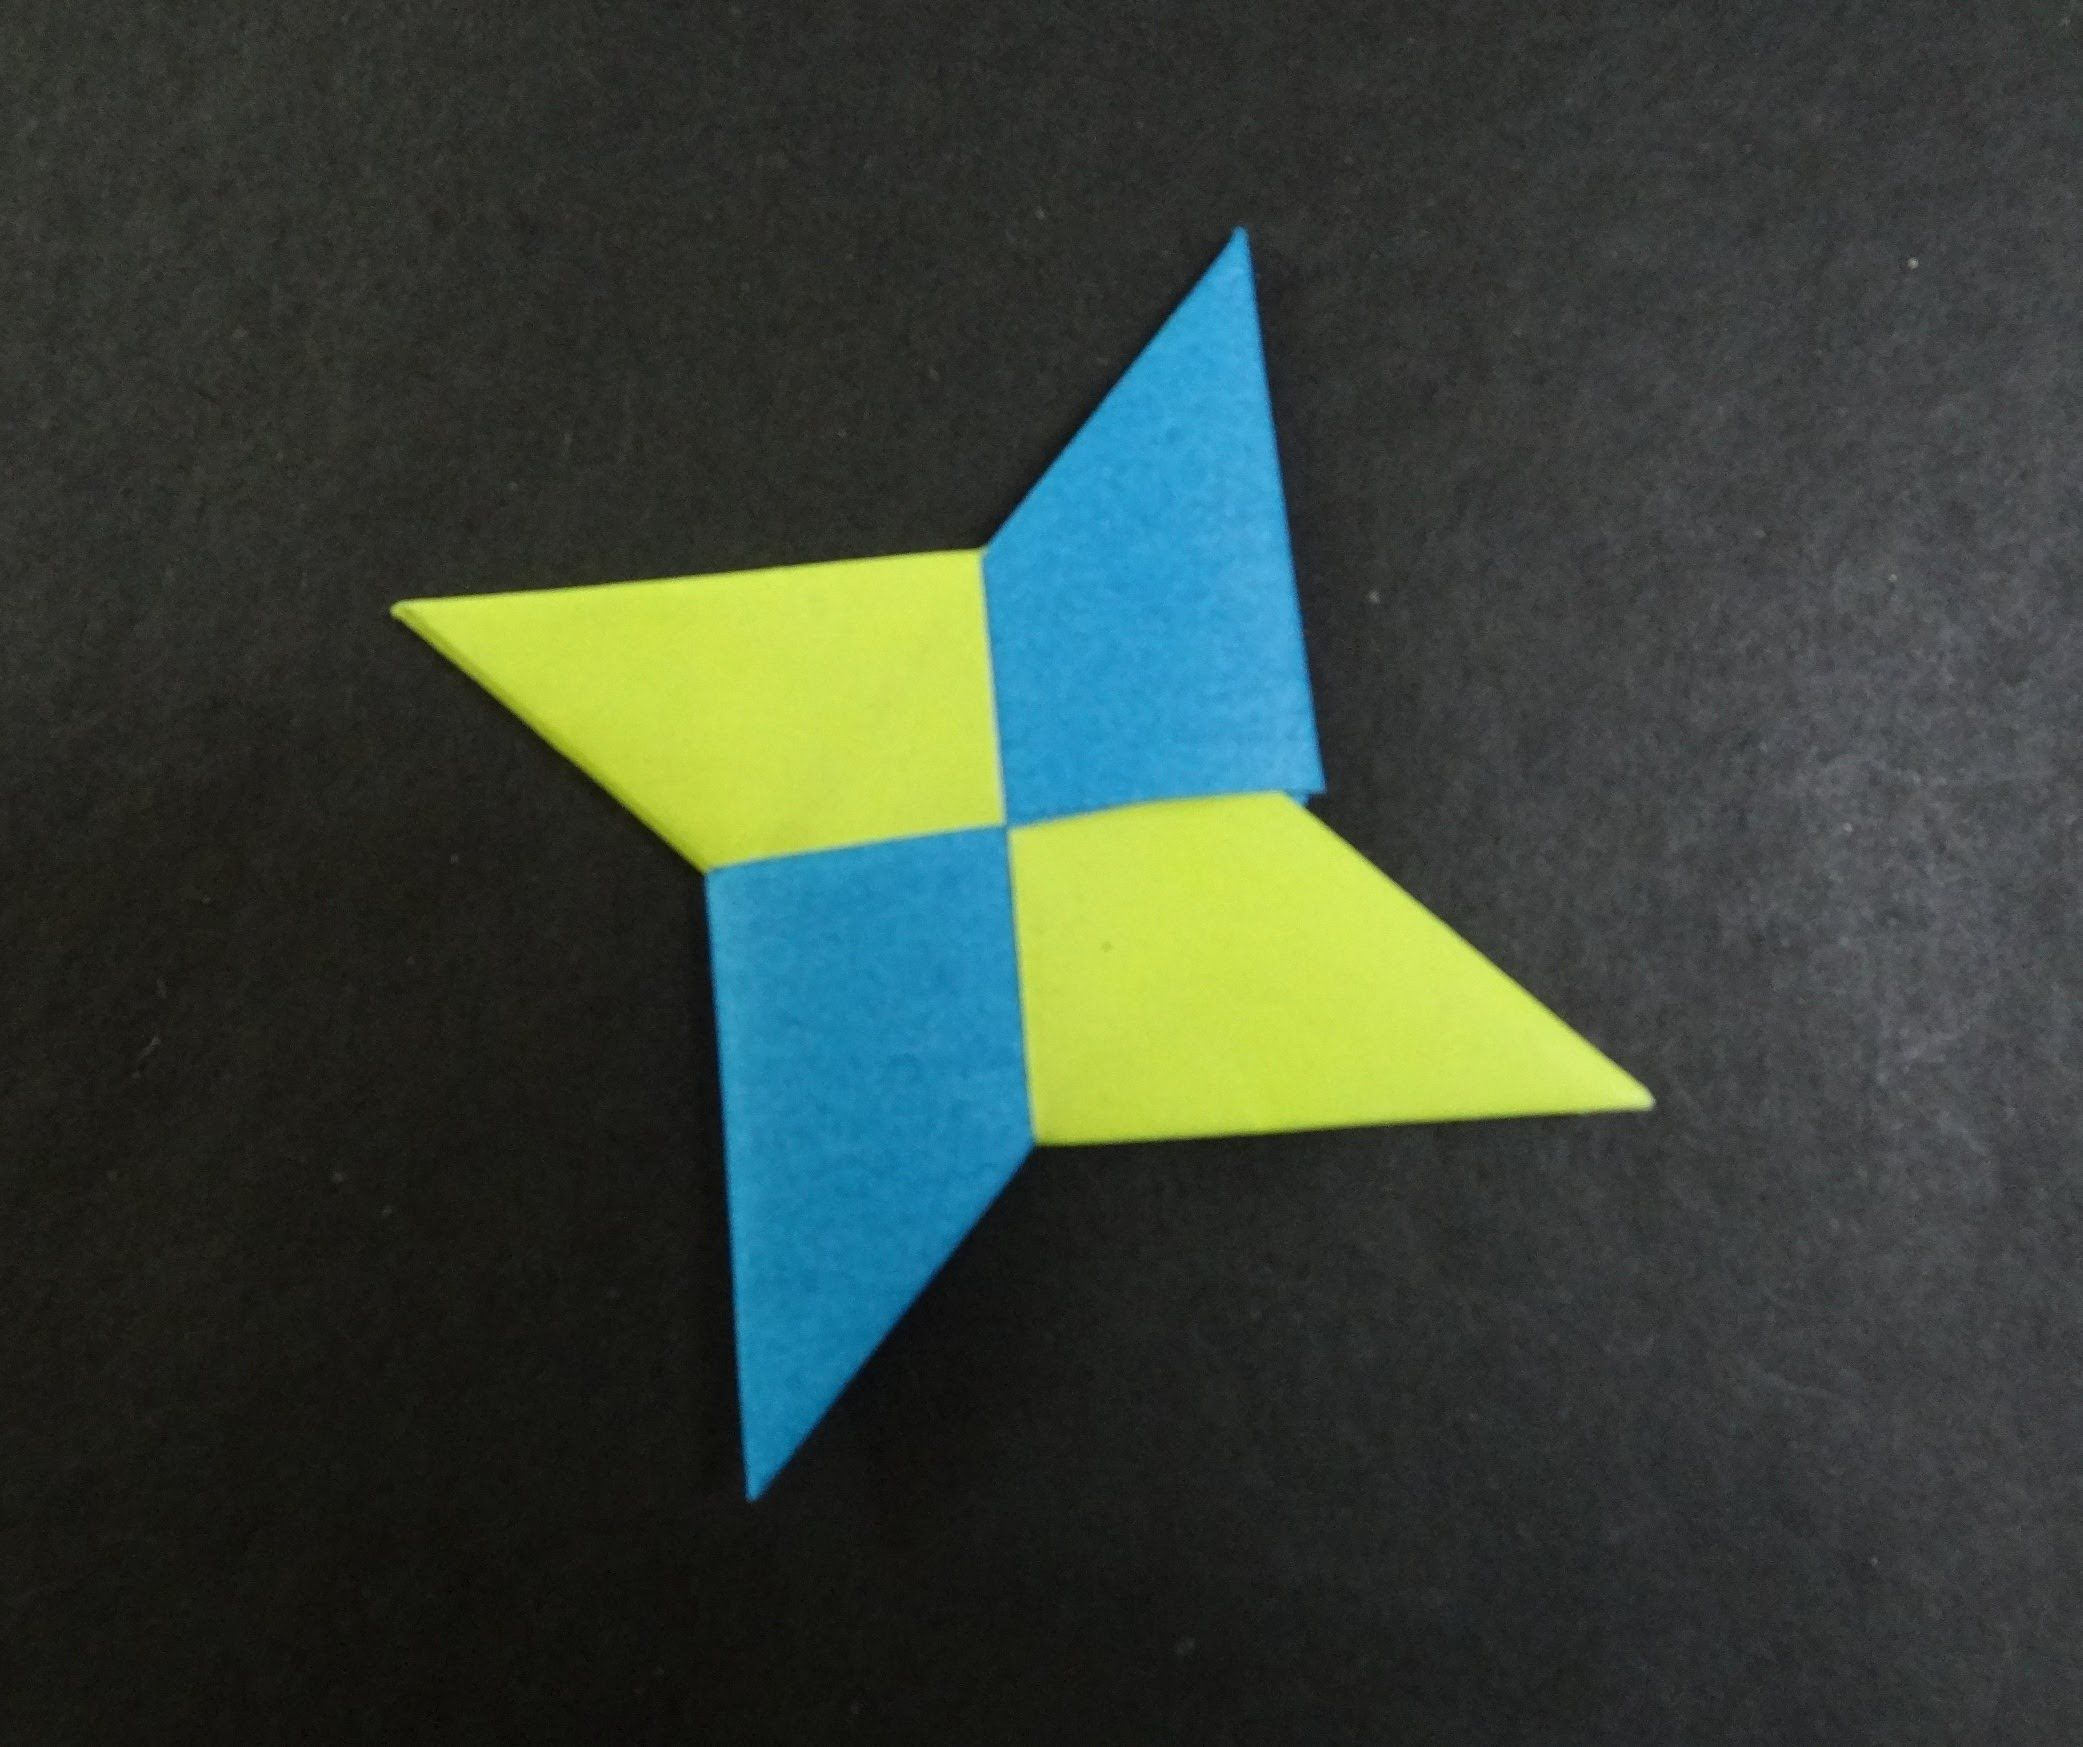 Origami Tutorial How To Fold An Ninja Star Shuriken Tutorials For Tomoko Fuse Boxes